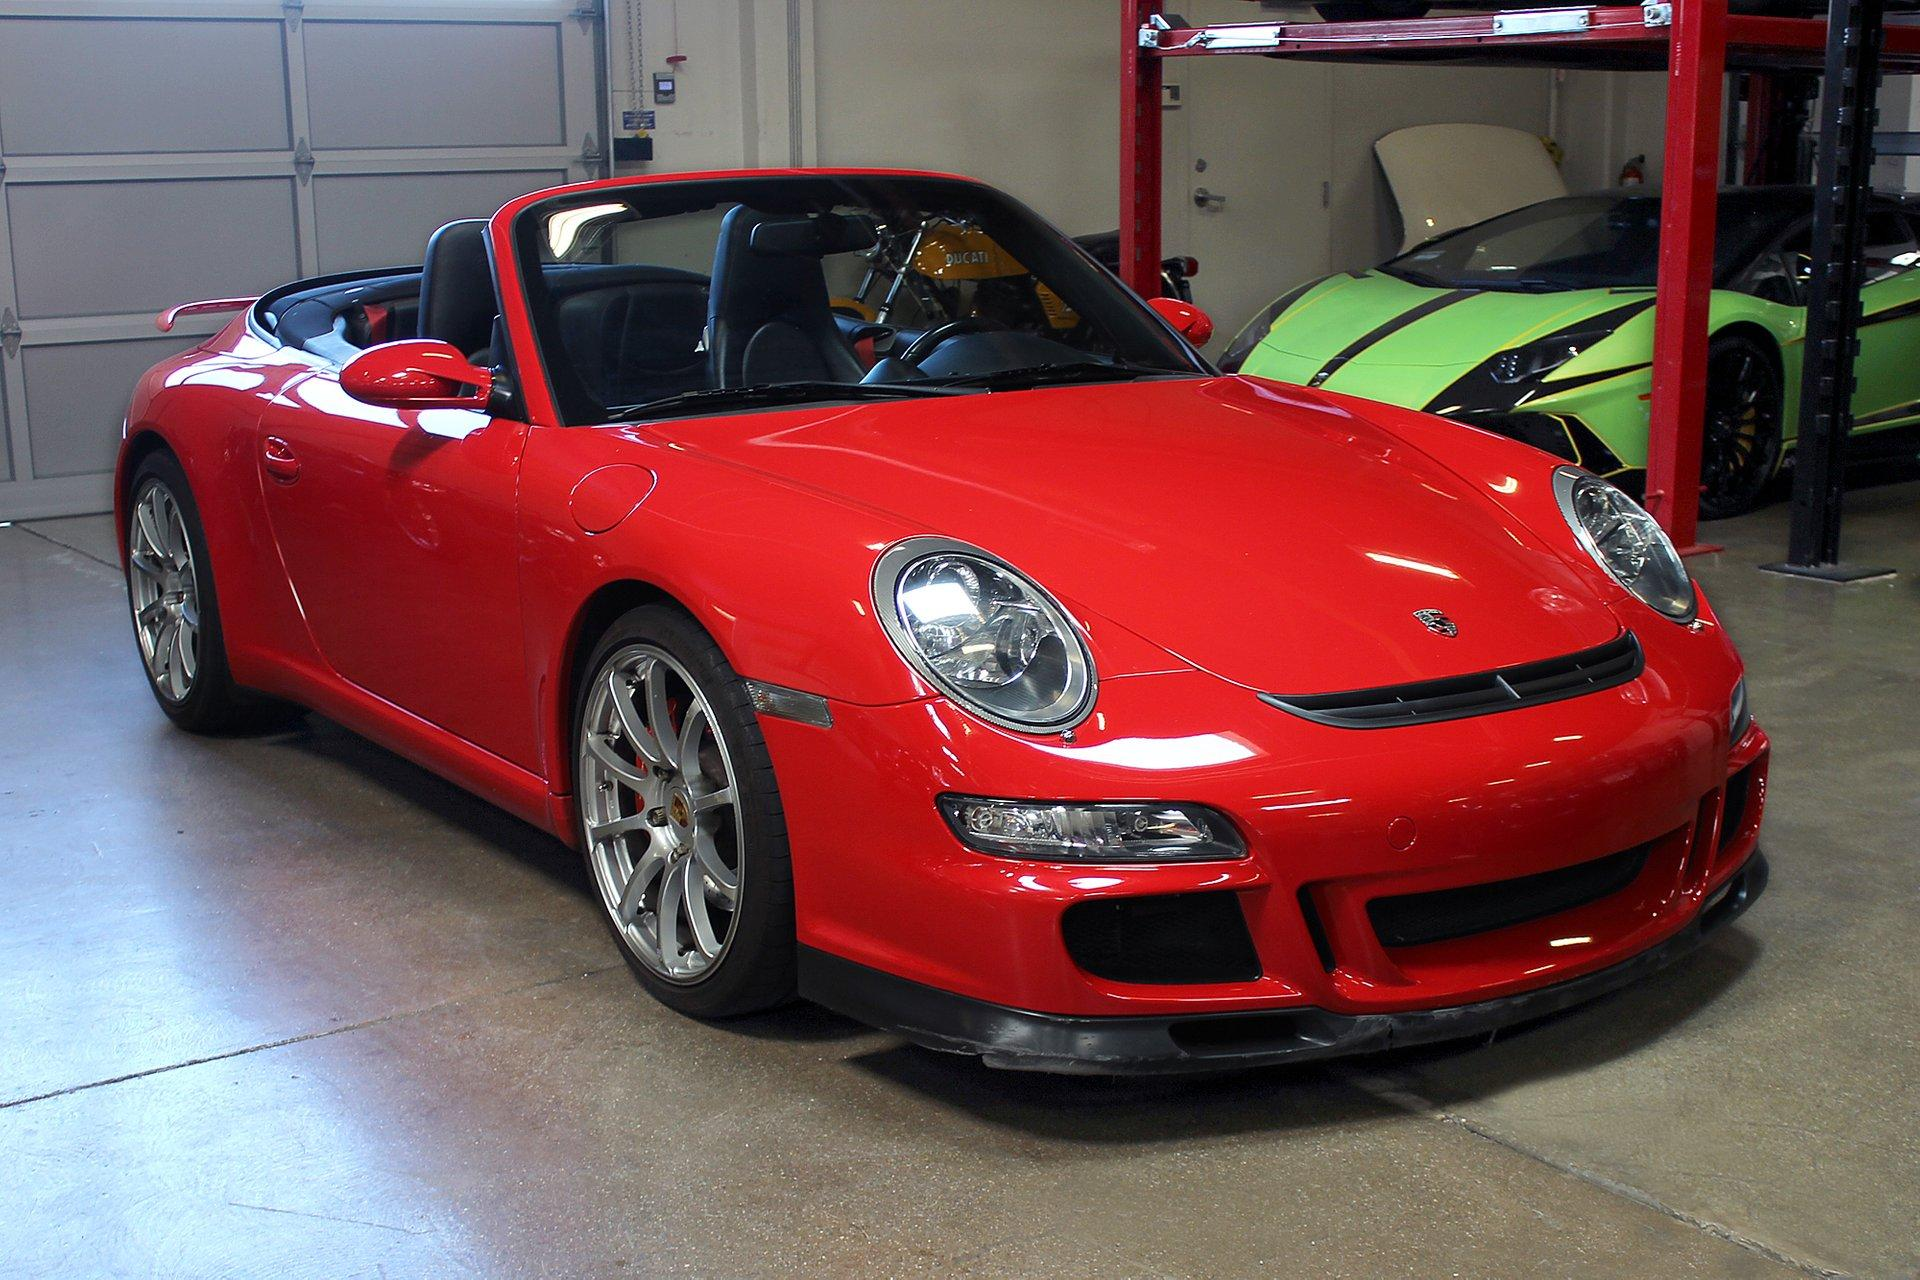 Used 2005 Porsche 911 C4S Cabriolet for sale Sold at San Francisco Sports Cars in San Carlos CA 94070 1